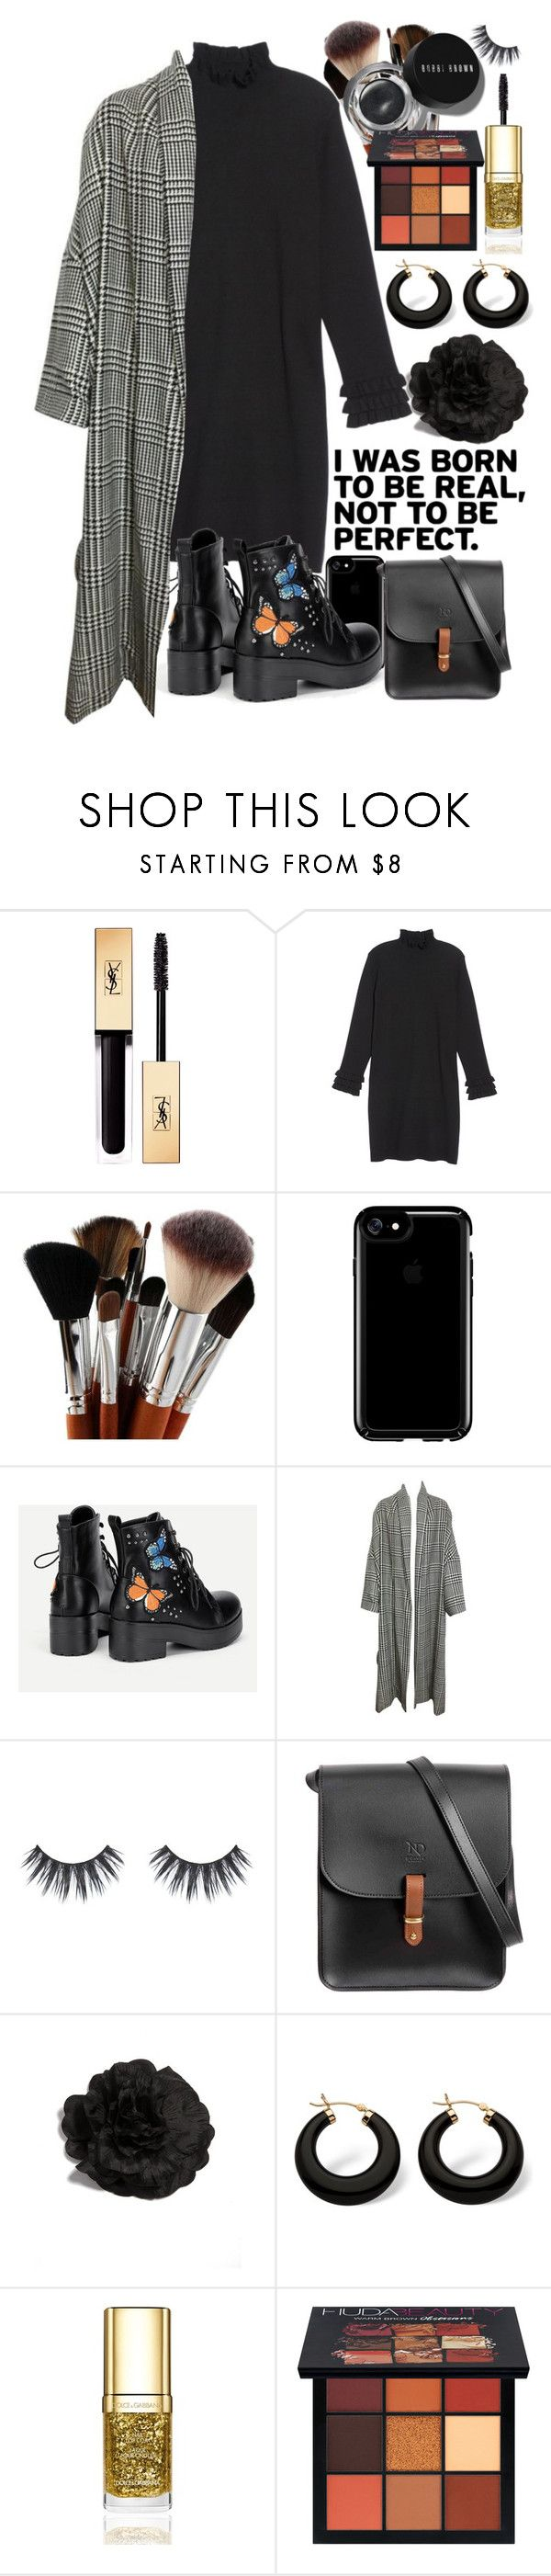 """""""Over sized coats"""" by earthangell on Polyvore featuring Yves Saint Laurent, Glamorous, Speck, N'Damus, Palm Beach Jewelry, Bobbi Brown Cosmetics, Dolce&Gabbana and Huda Beauty"""